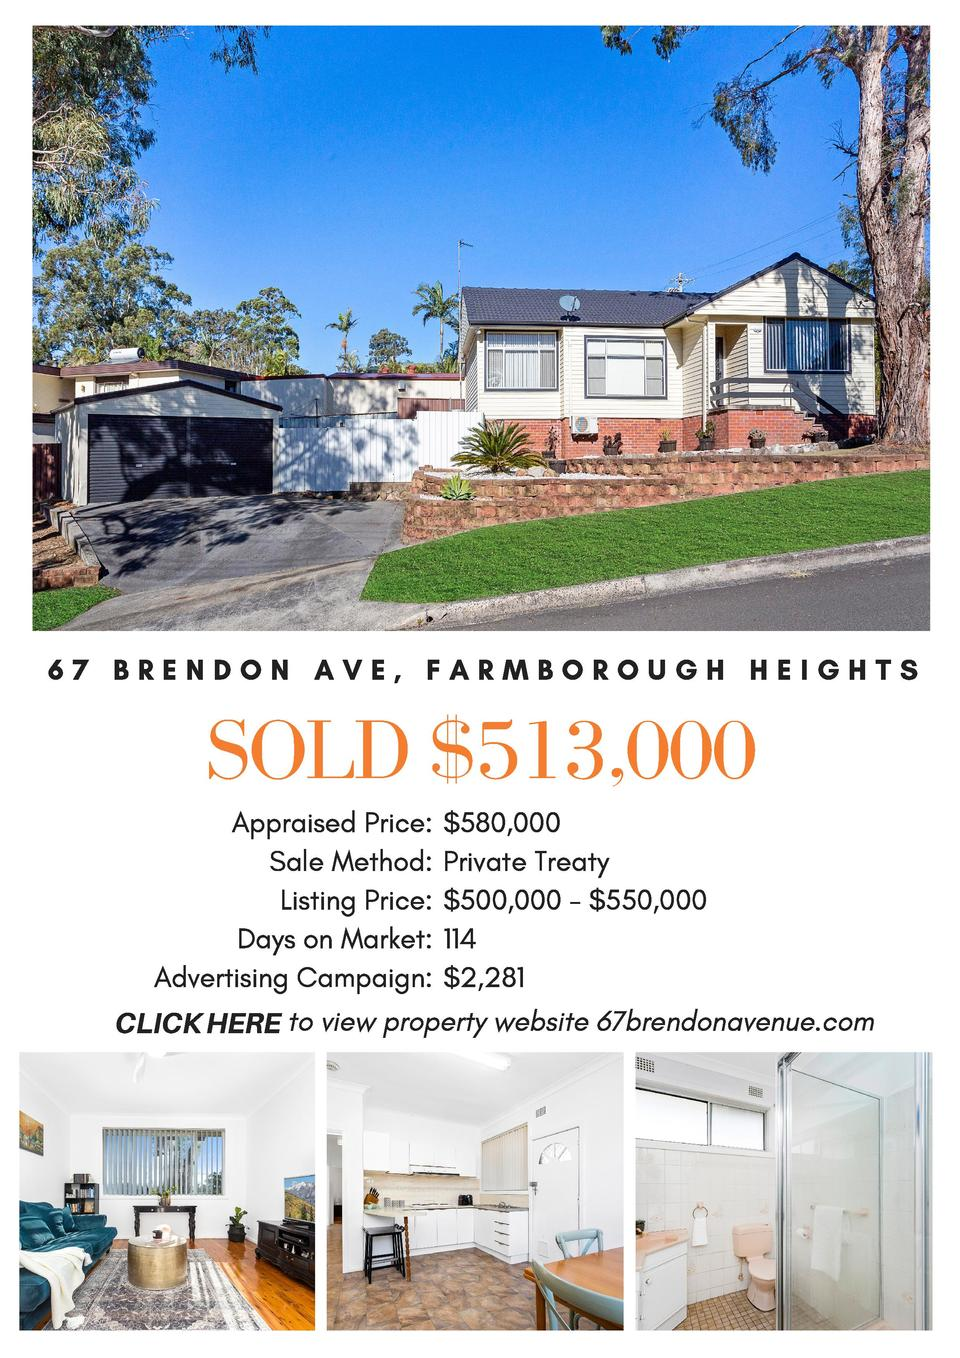 67 BRENDON AVE, FARMBOROUGH HEIGHTS  SOLD  513,000 Appraised Price   580,000 Sale Method  Private Treaty   Listing Price  ...